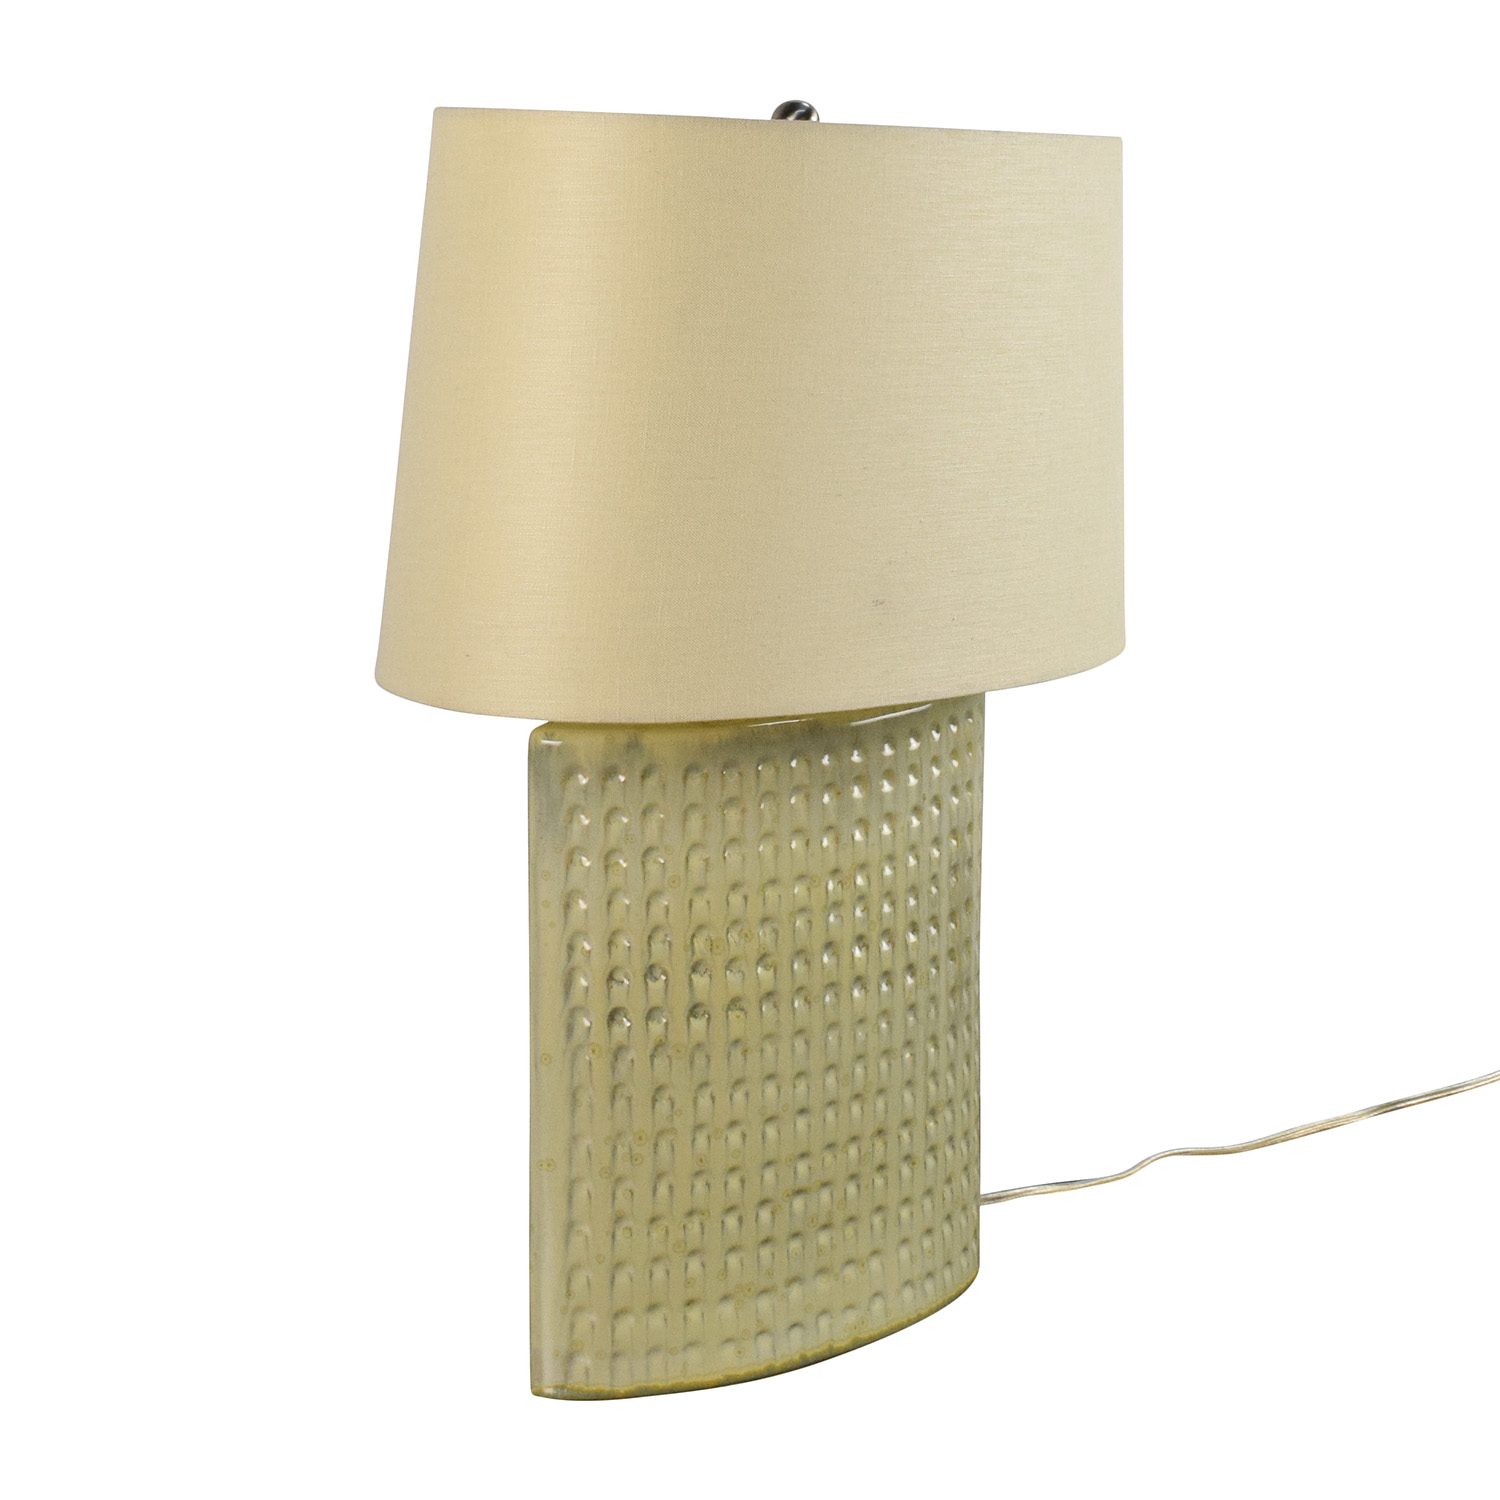 Crate & Barrel Ceramic Tatum Lamp / Lamps